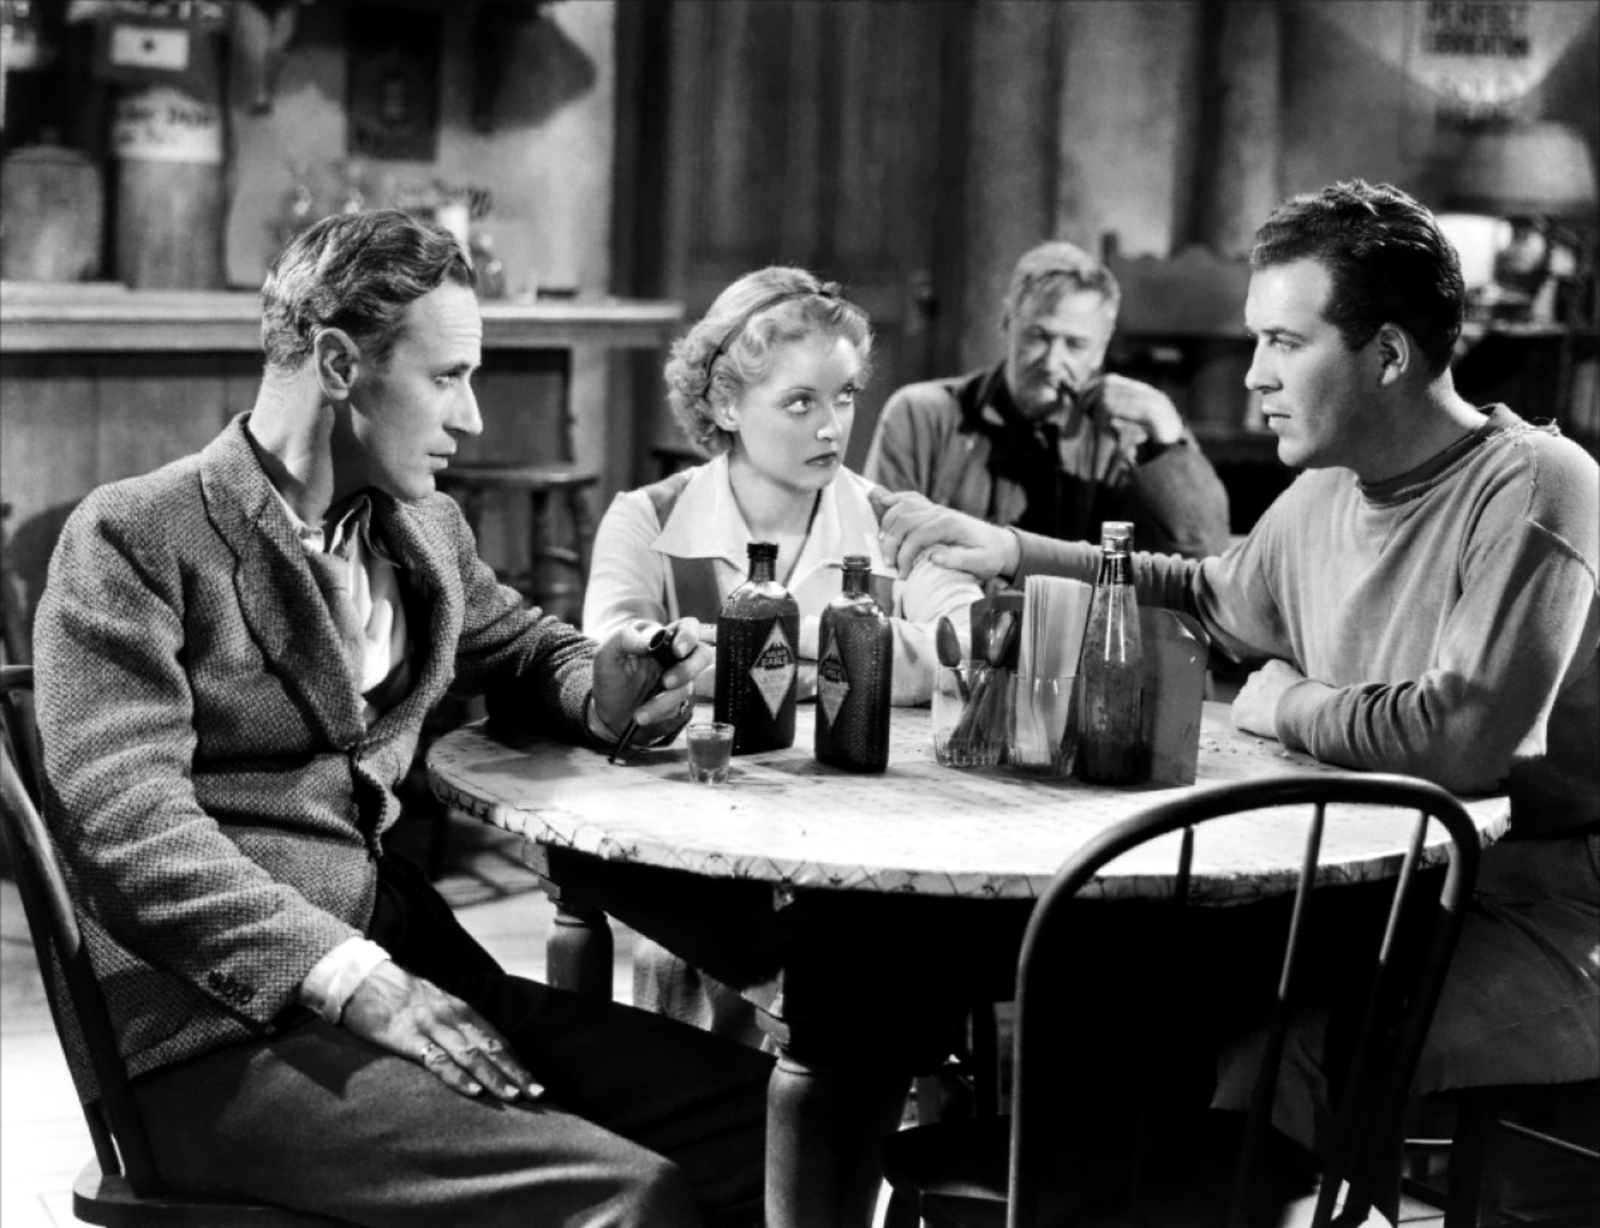 Leslie Howard in The Petrified Forest (L to R) Leslie Howard, Bette Davis, Charley Grapewin, Dick Foran